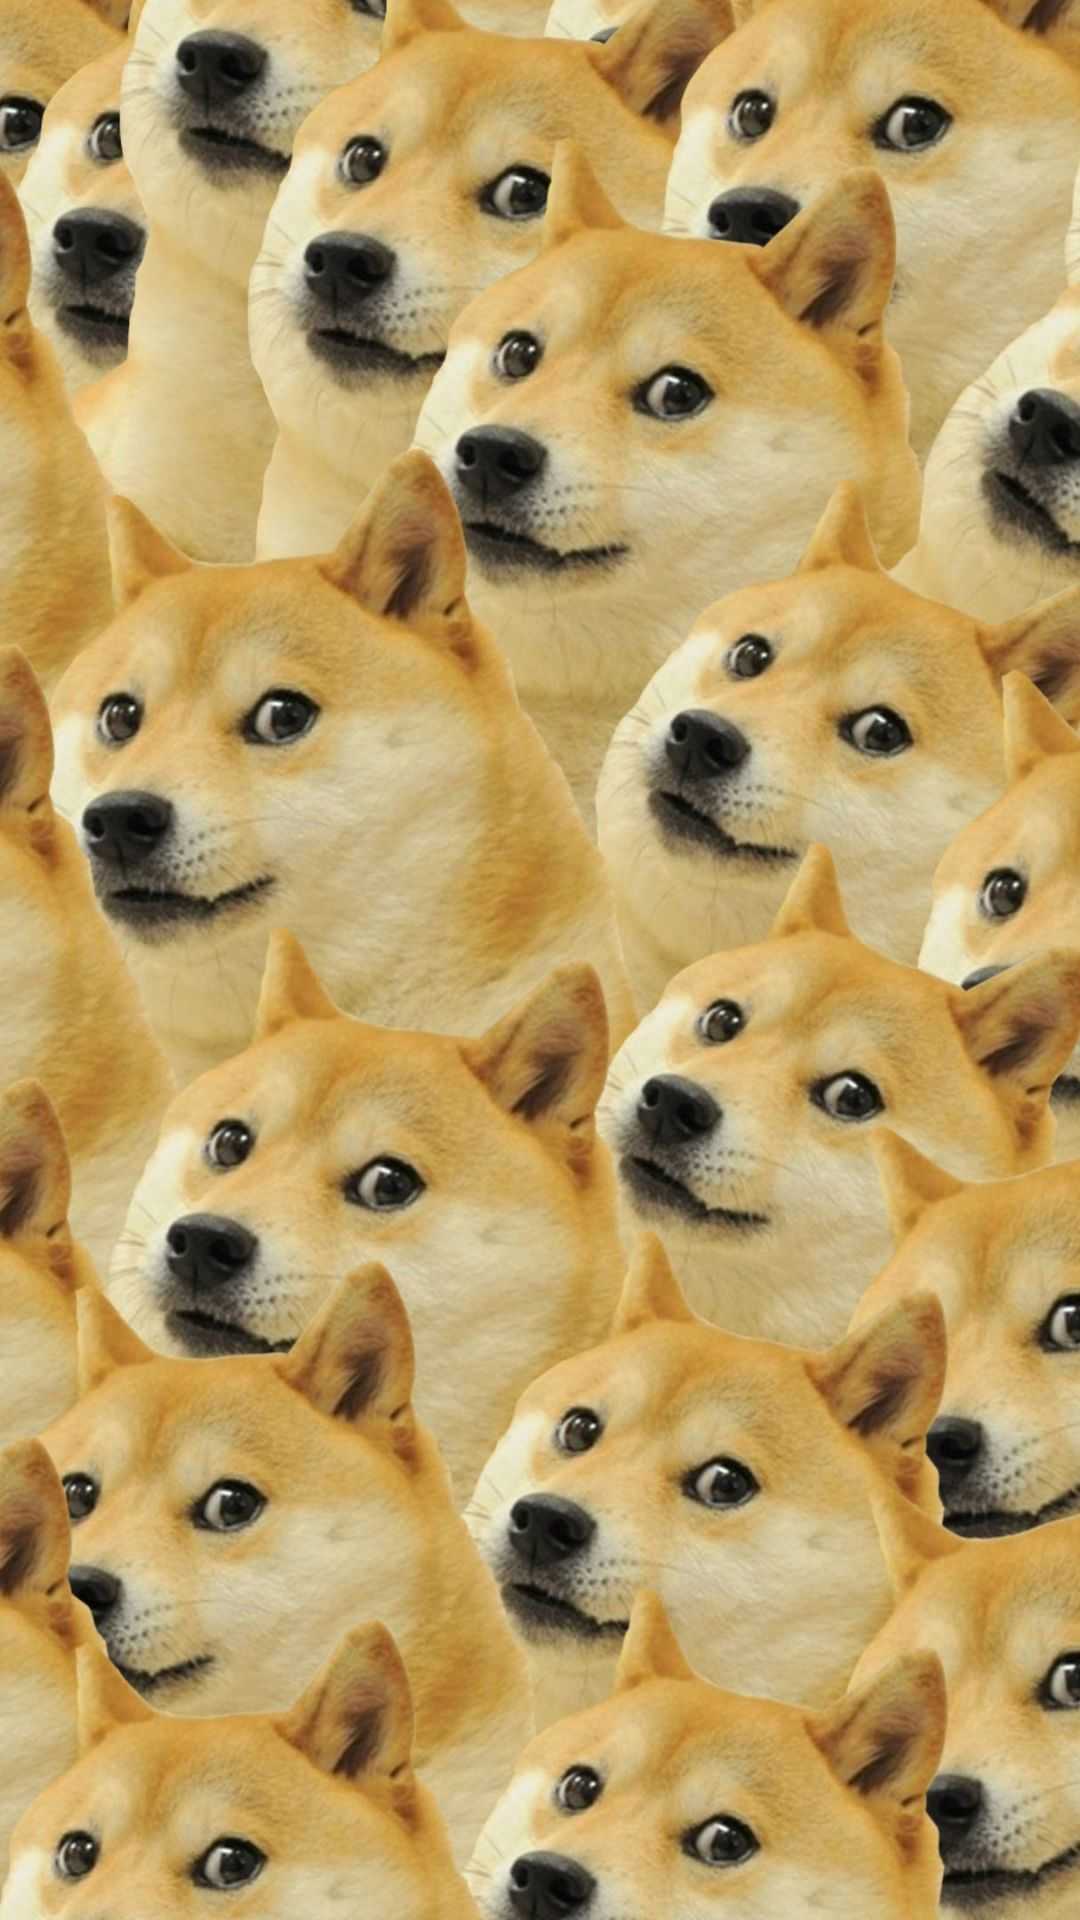 Doge Wallpaper Hd in 2020 (With images) Dog wallpaper iphone